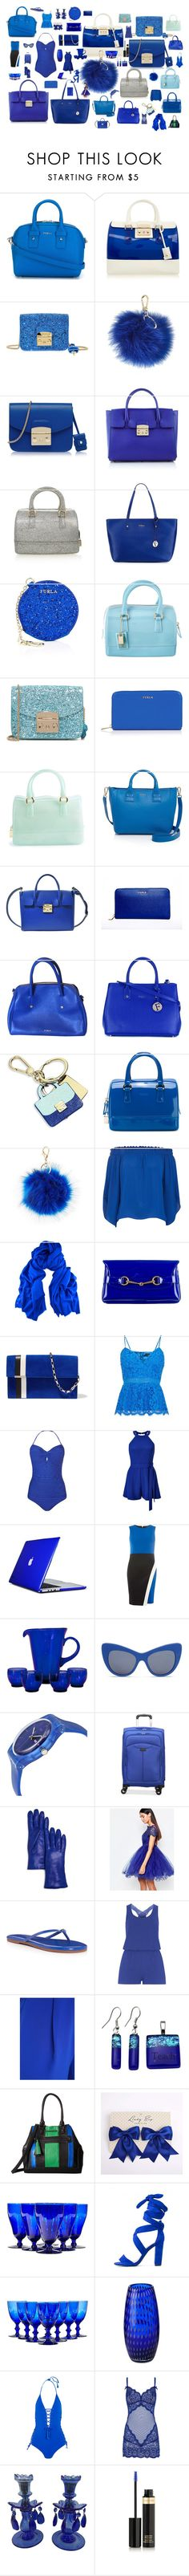 """""""Riveting Cobalt"""" by airandearth on Polyvore featuring Furla, Charlotte Russe, Biba, Black, Gucci, Tomasini, Bardot, Phase Eight, Miss Selfridge and Speck"""